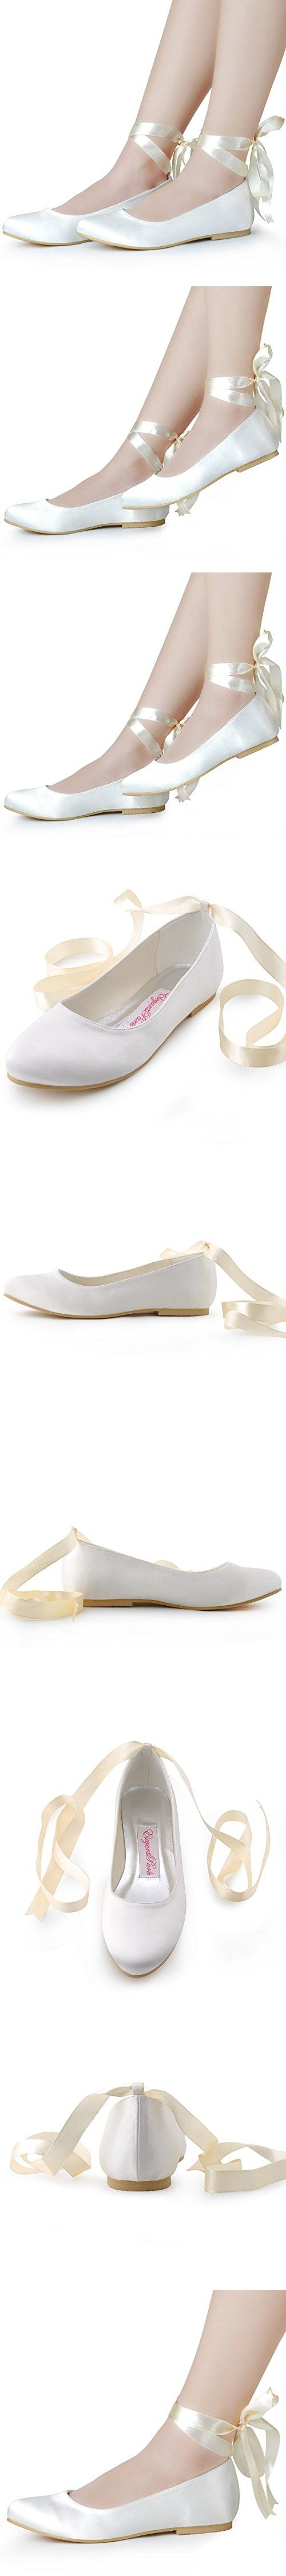 ElegantPark EP11105 Women's Closed Toe Low Heel Ribbon Tie Satin Wedding Bridal Flats Shoes Ivory US 7